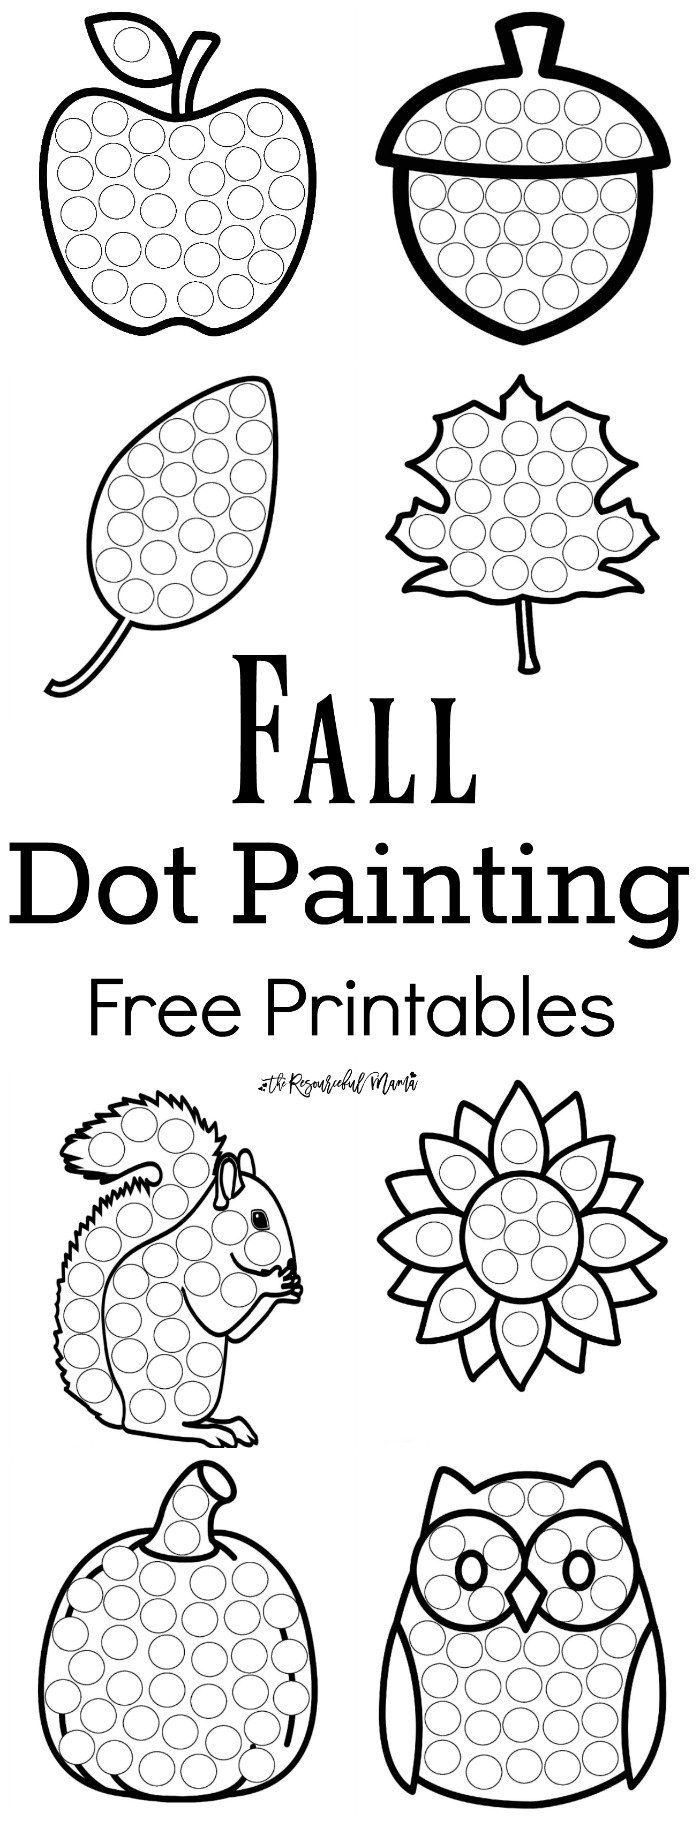 These Fall Dot Painting worksheets are a fun mess free painting activity for young kids that work on hand-eye coordination and fine motor skills. Grab your free printable now! Toddlers and preschoolers love them. They work great with Do a Dot Markers.